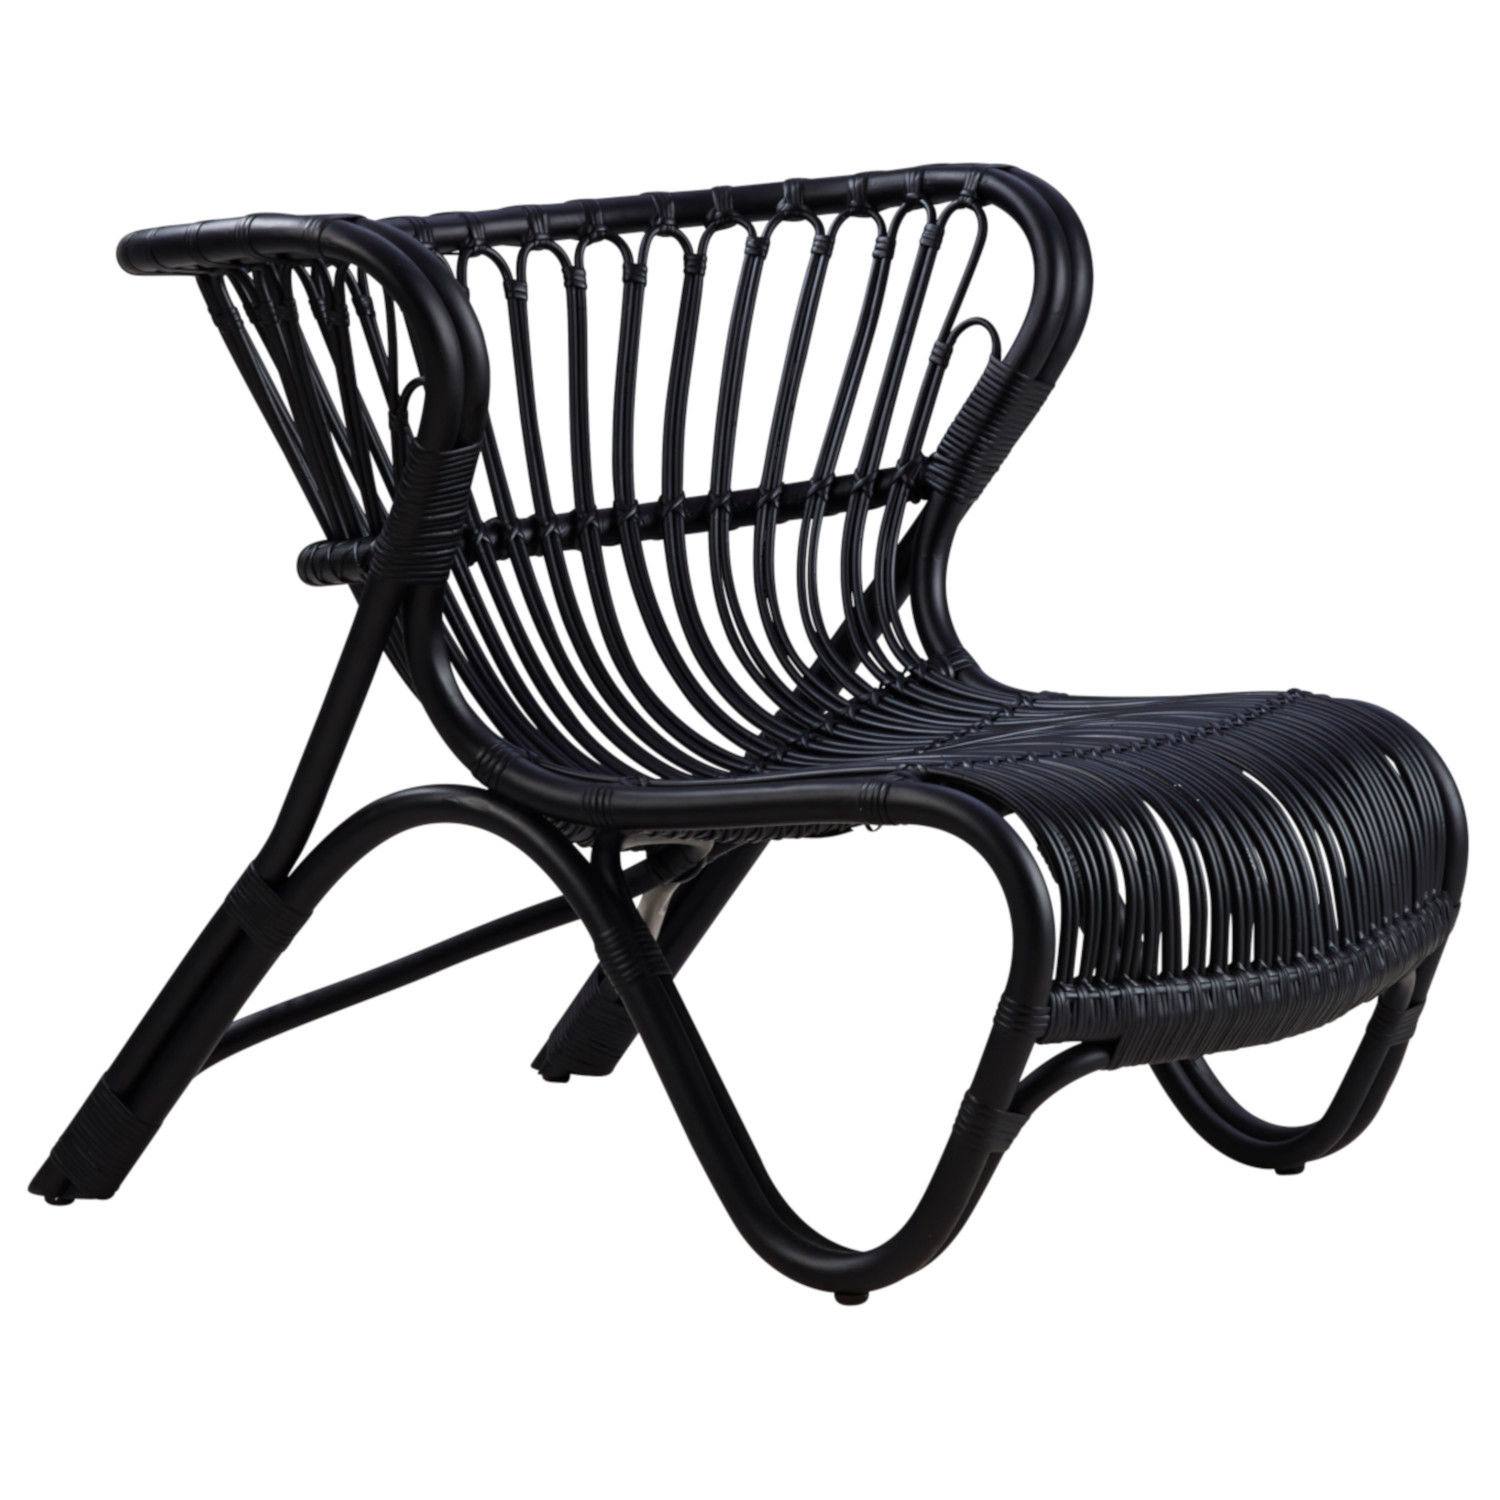 Chairs & Recliners Category